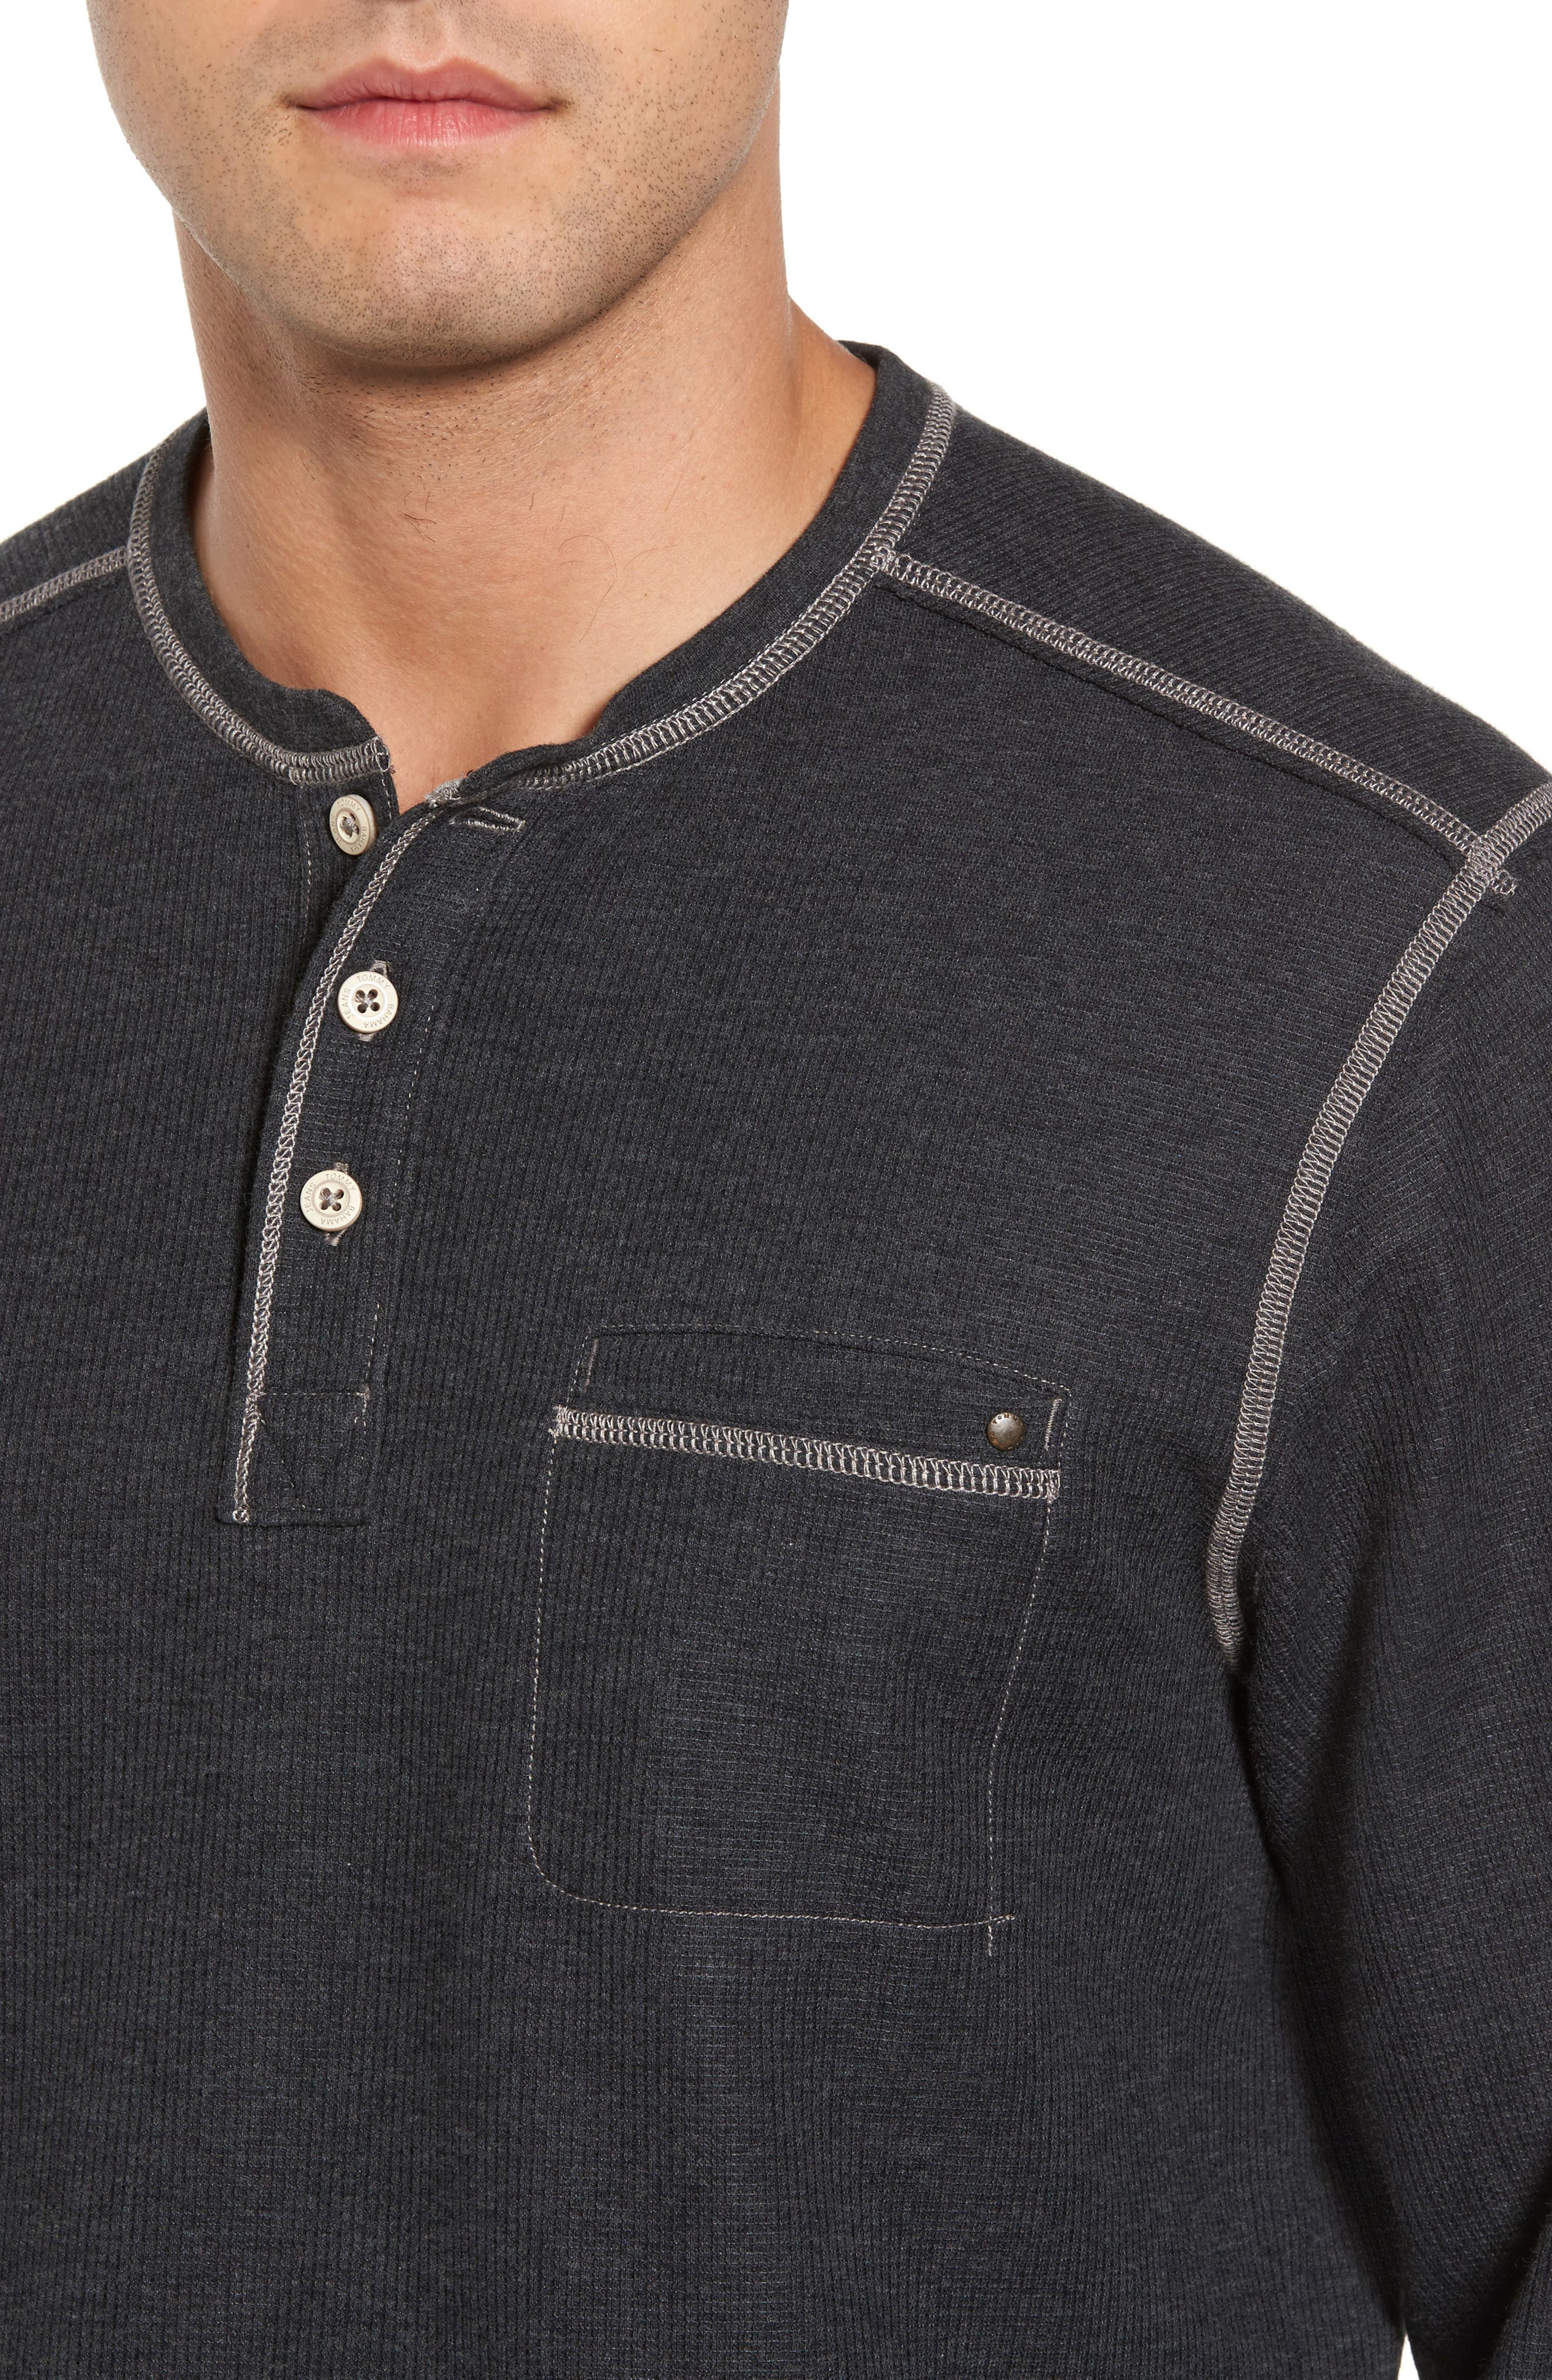 Island Thermal Standard Fit Thermal Henley,                             Alternate thumbnail 4, color,                             050